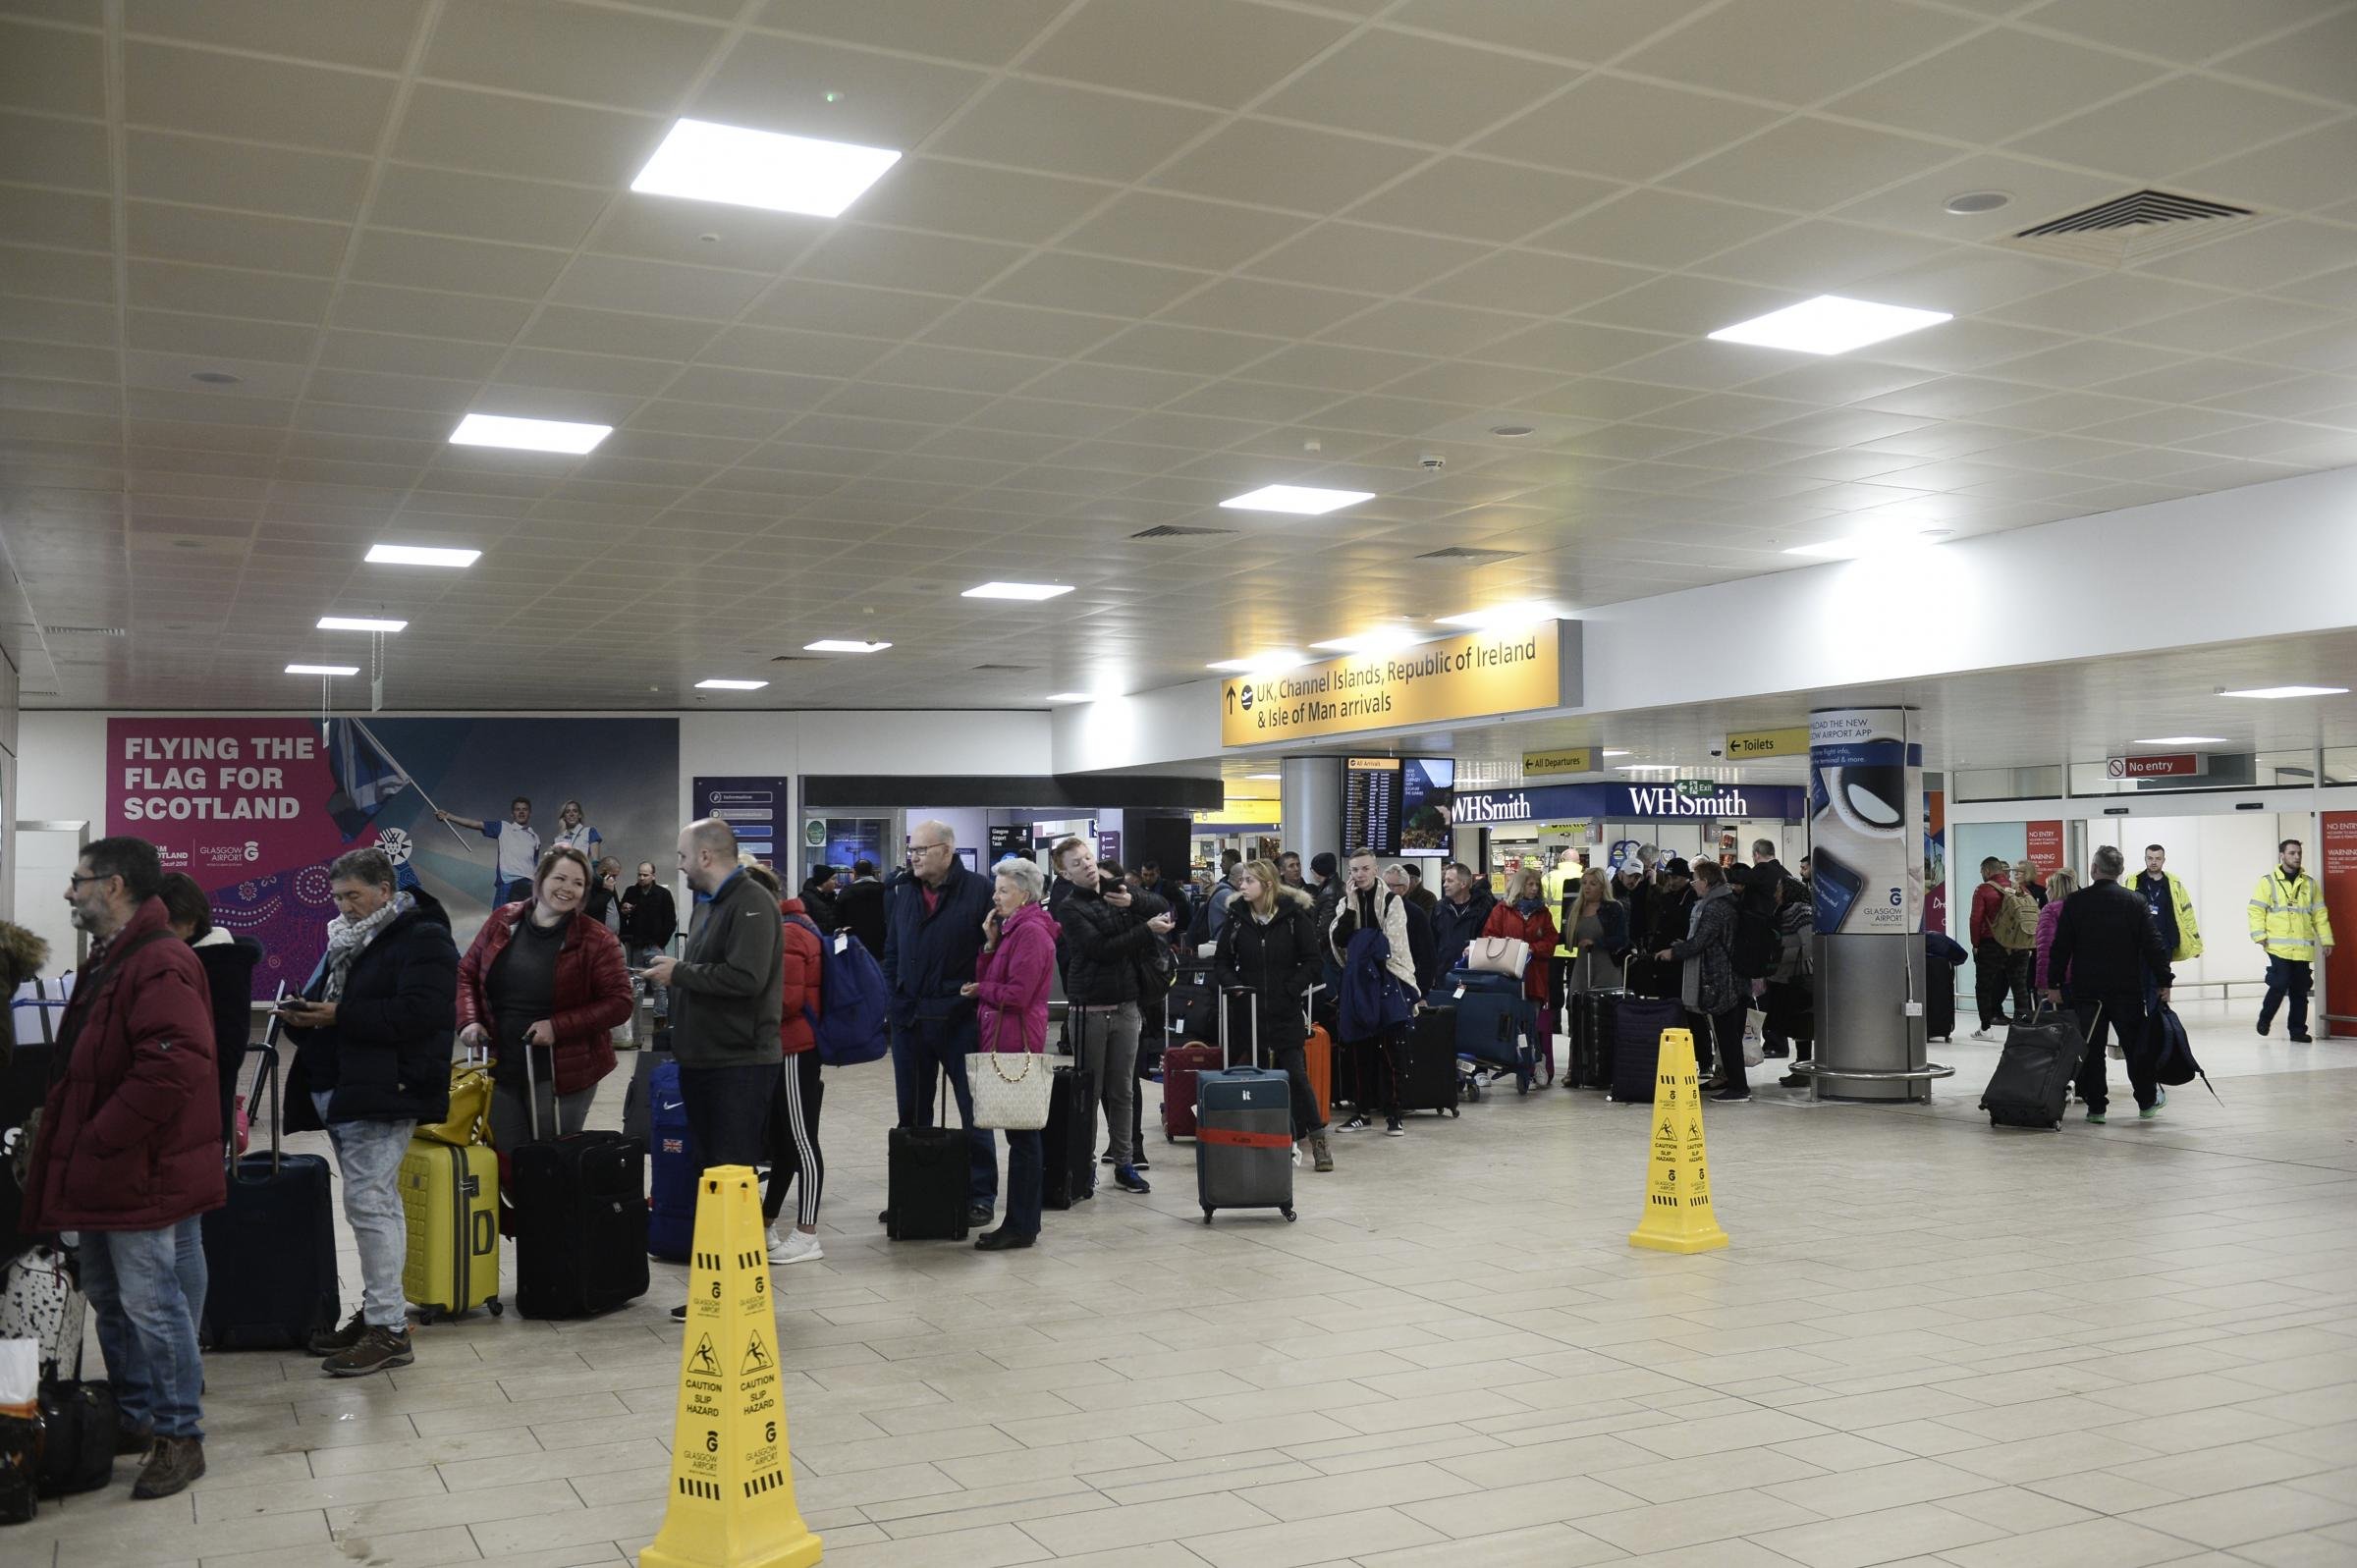 Passengers at Glasgow Airport were forced to queue for taxis yesterday as the snow saw flights cancelled. Photograph: Jamie Simpson